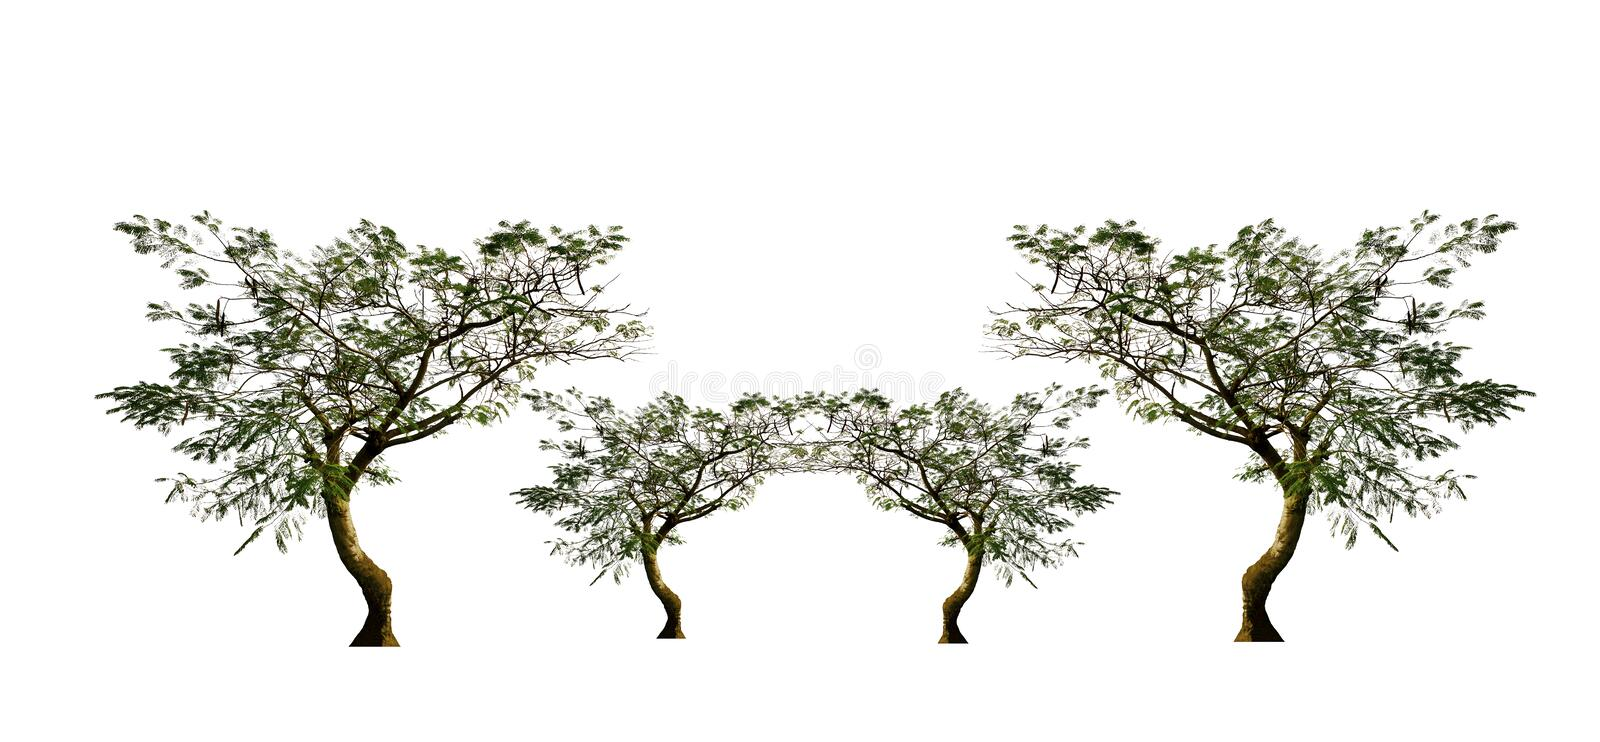 Set of trees, flame tree, isolated on white background. Set of flame tree isolated white background plants agriculture fruit  local-fruit land landscape view royalty free stock image